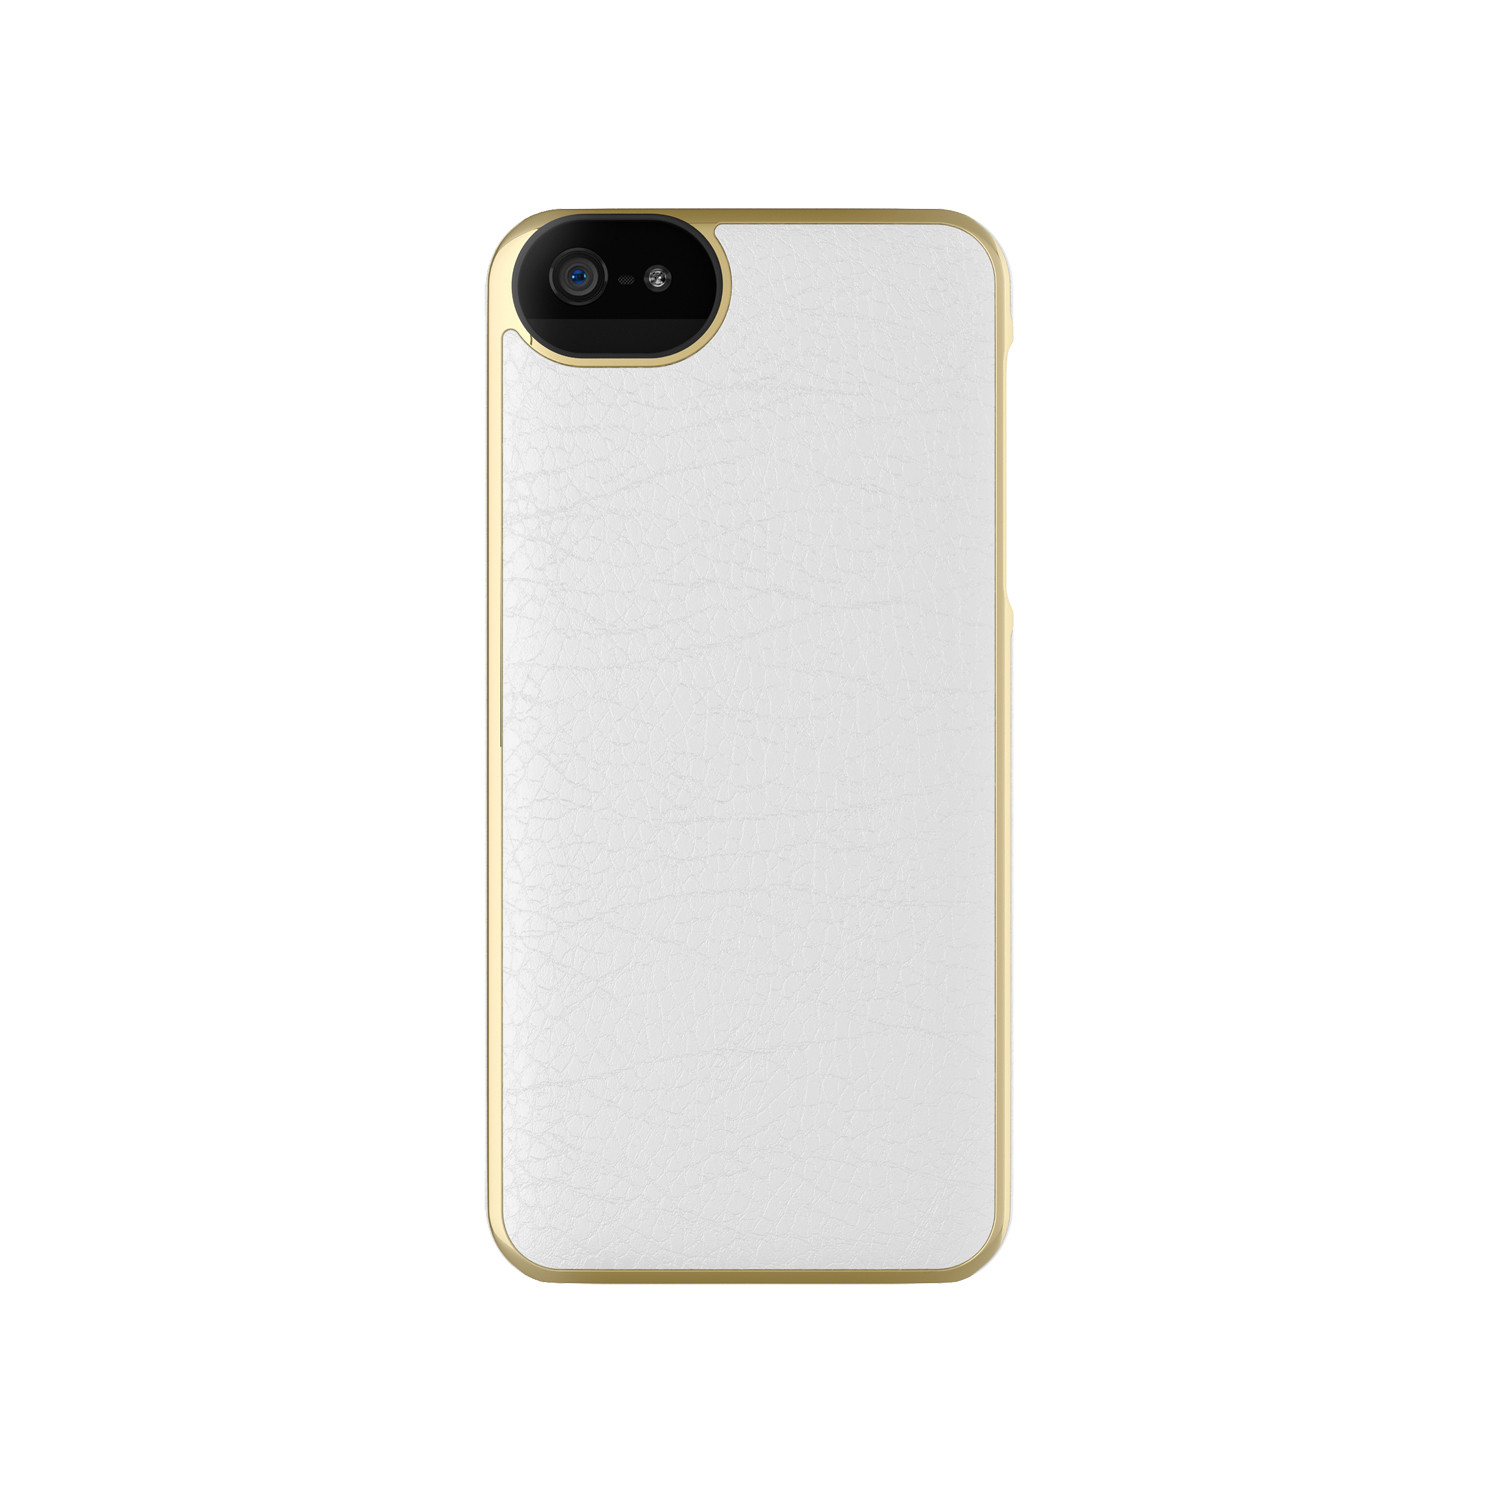 Leather Wrap Case for iPhone 5/5s // White + Gold ...